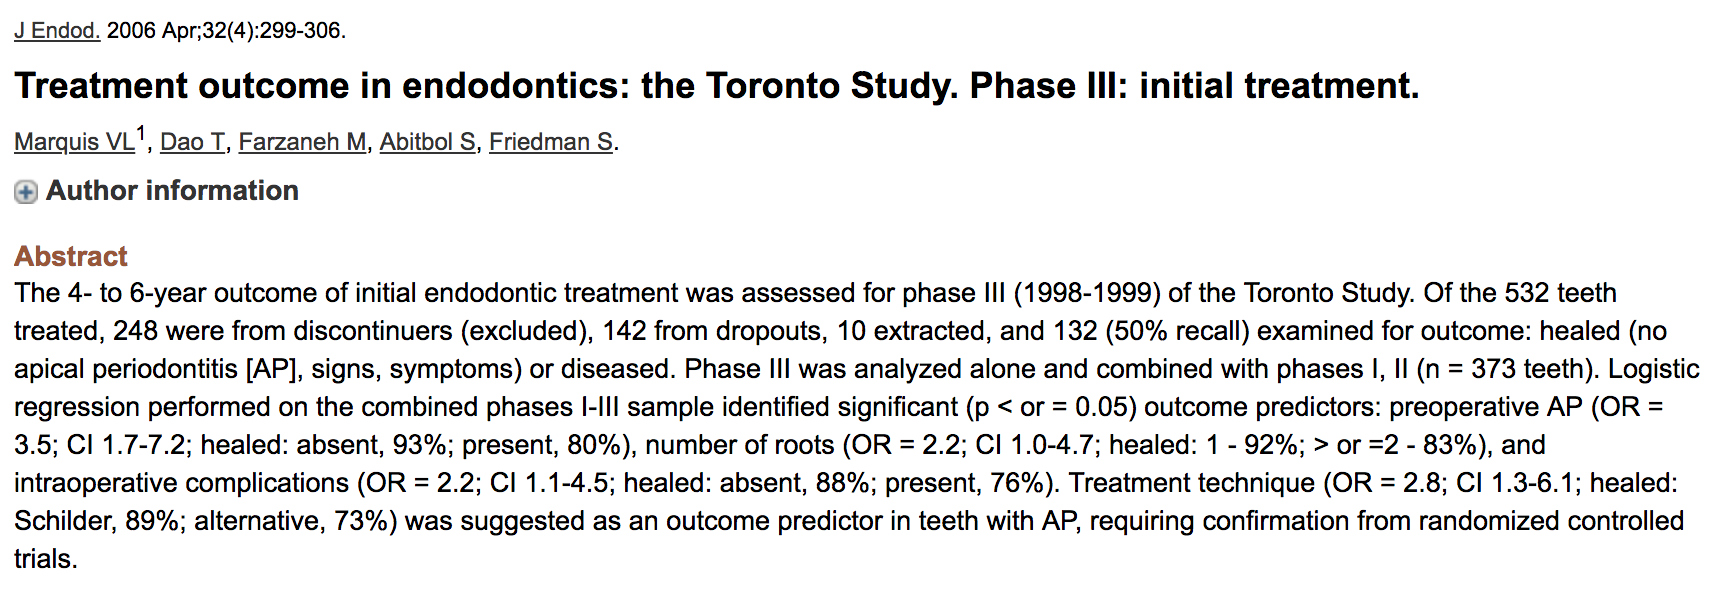 Dr. Sarah Abitbol - Treatment outcome in endodontics: the Toronto Study. Phase III